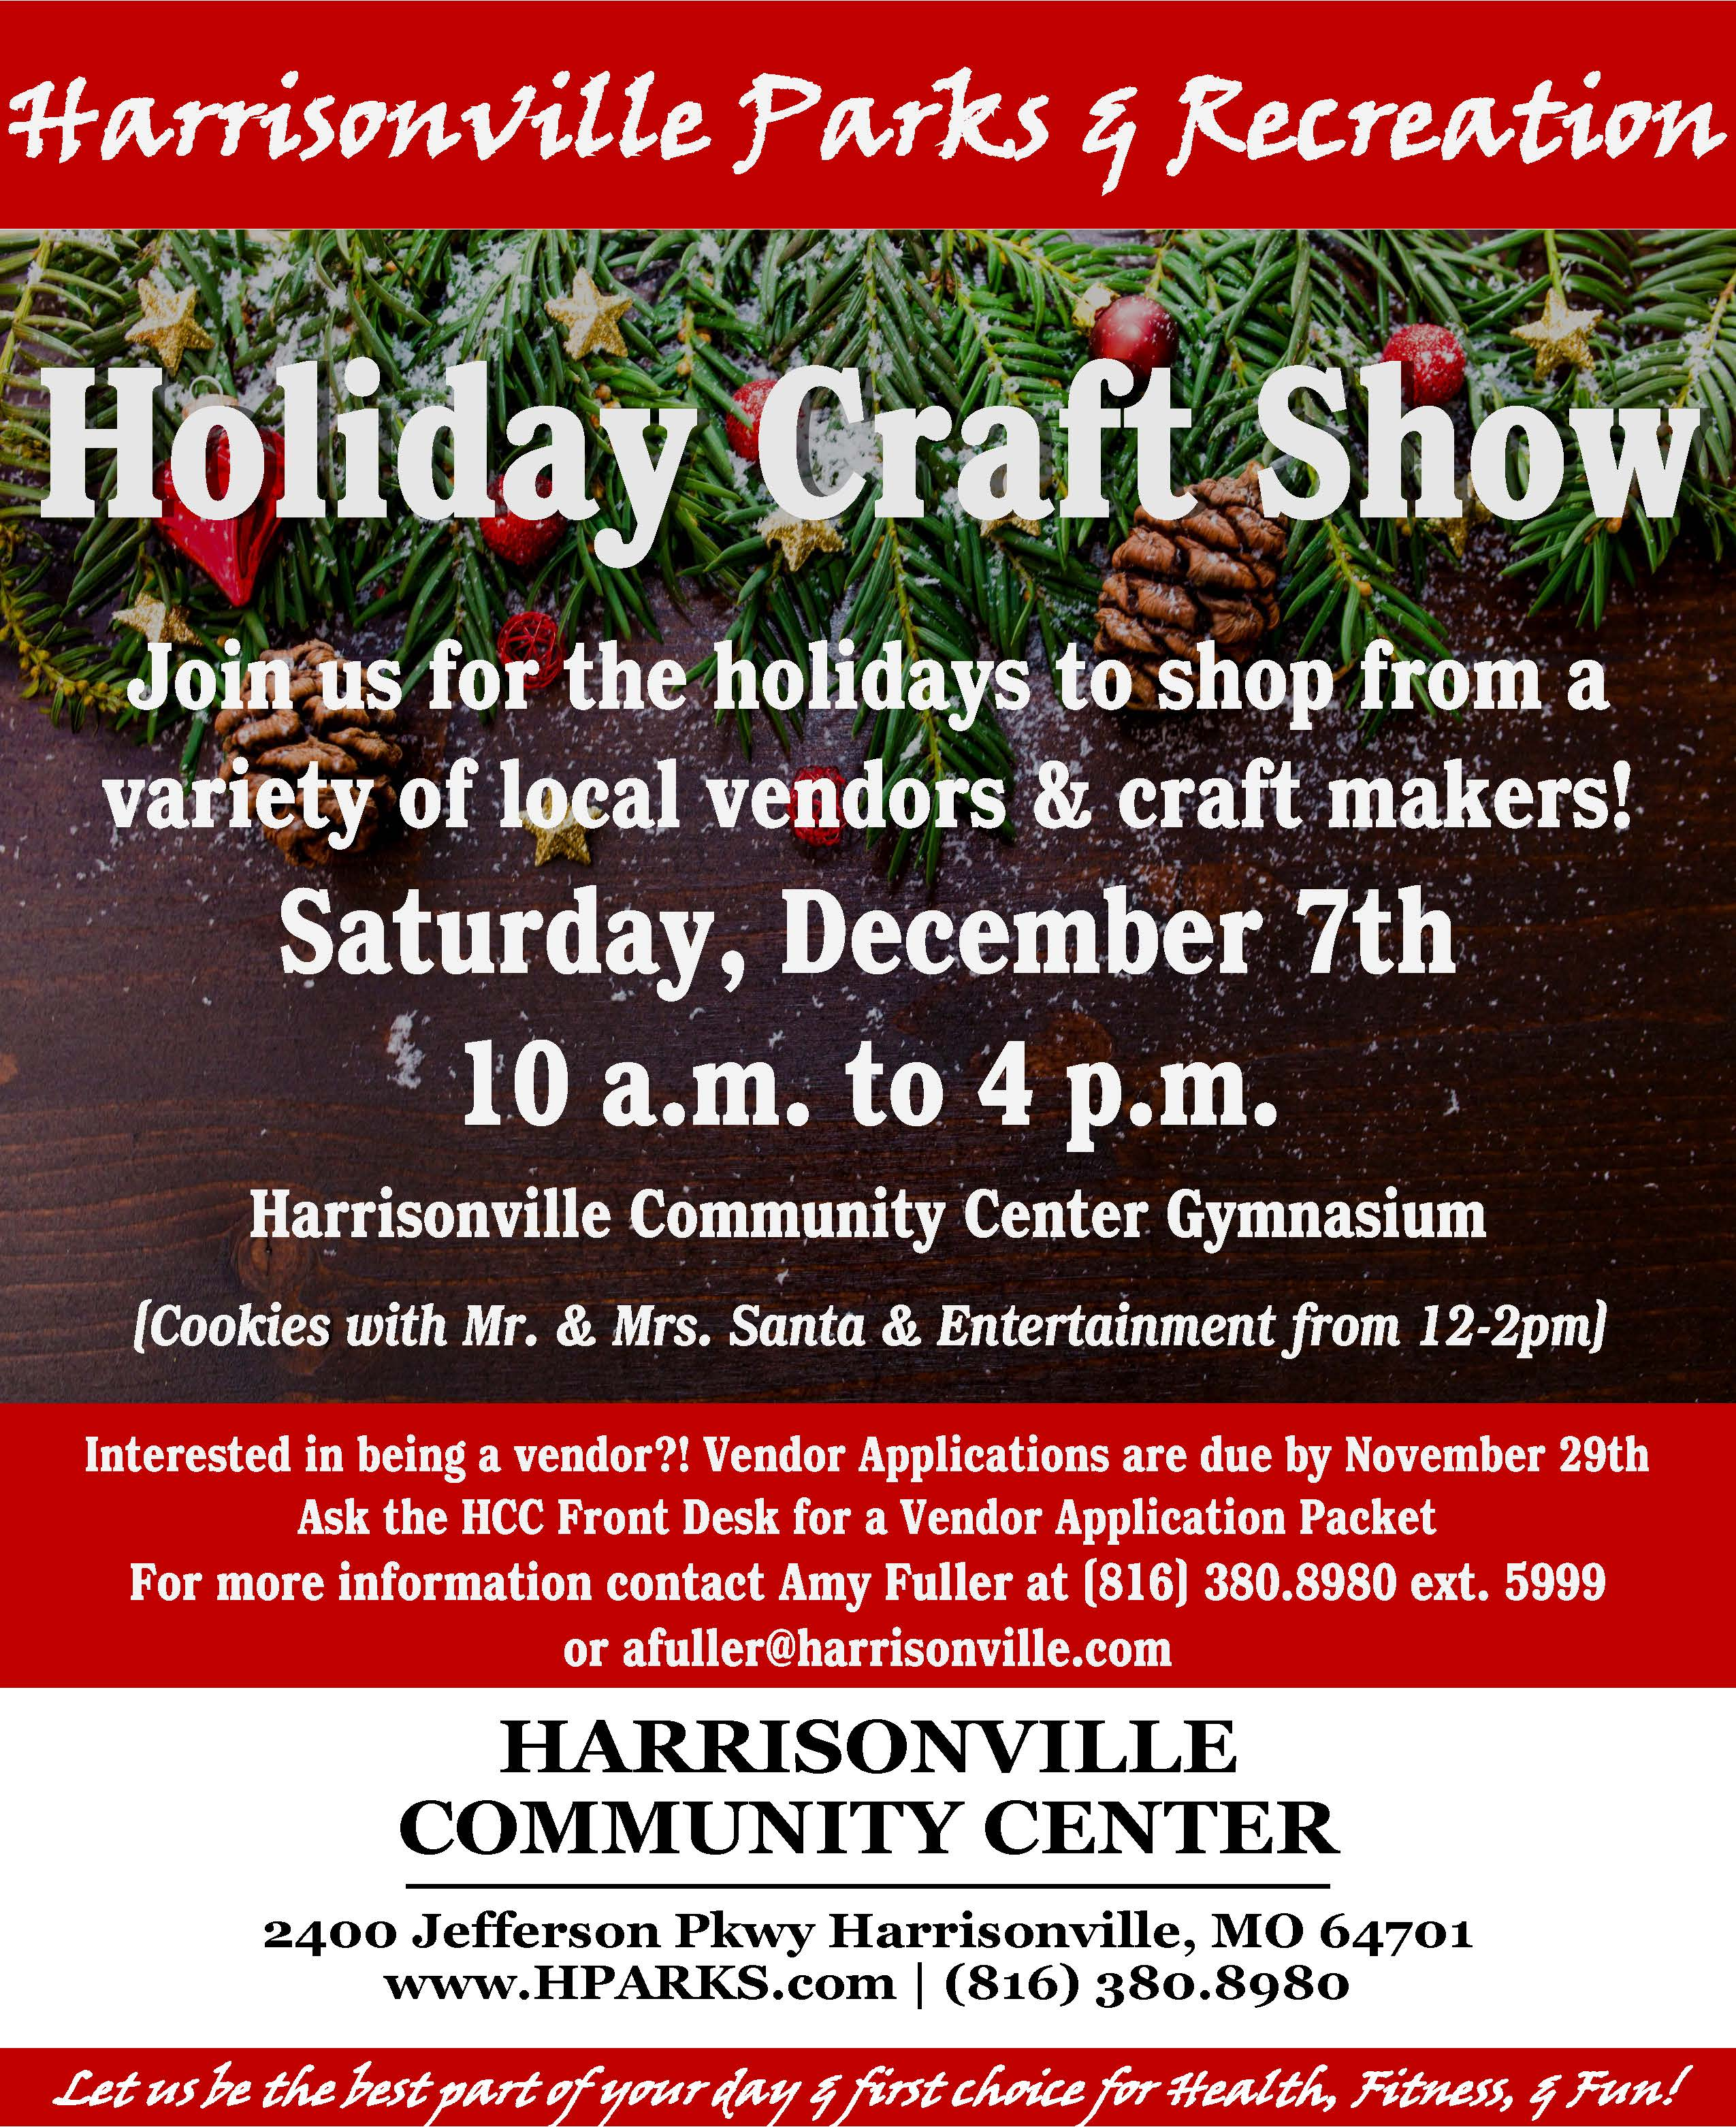 Holiday Craft Show Vendors Needed Flyer 2019